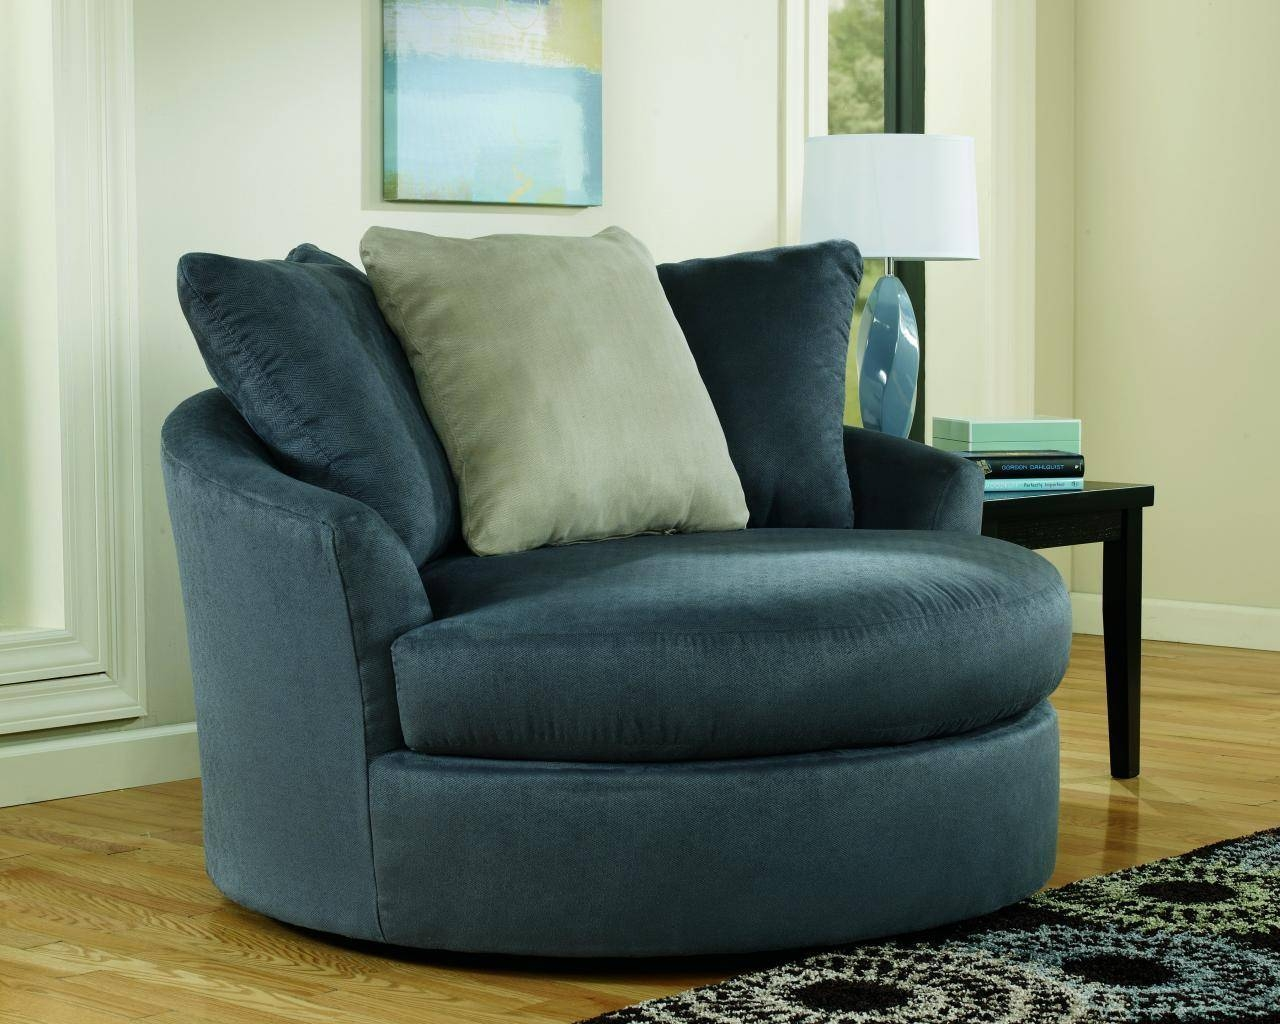 Round Sofa Chair Sets | Home Furniture regarding Circular Sofa Chairs (Image 21 of 30)